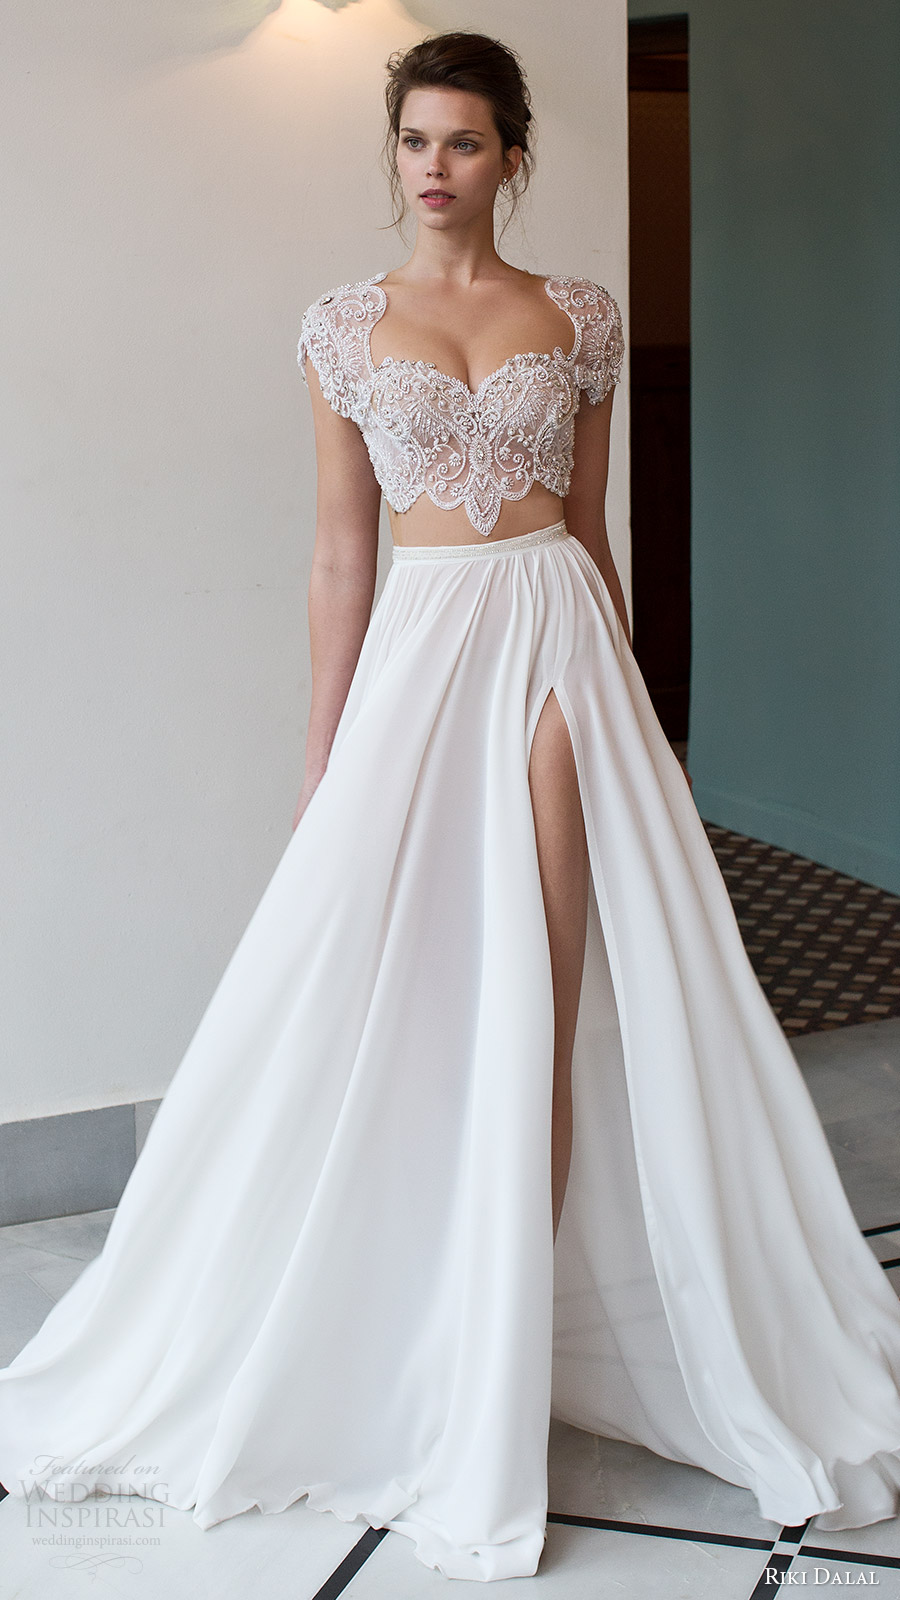 Riki dalal 2016 wedding dresses verona bridal for Crop top wedding dress